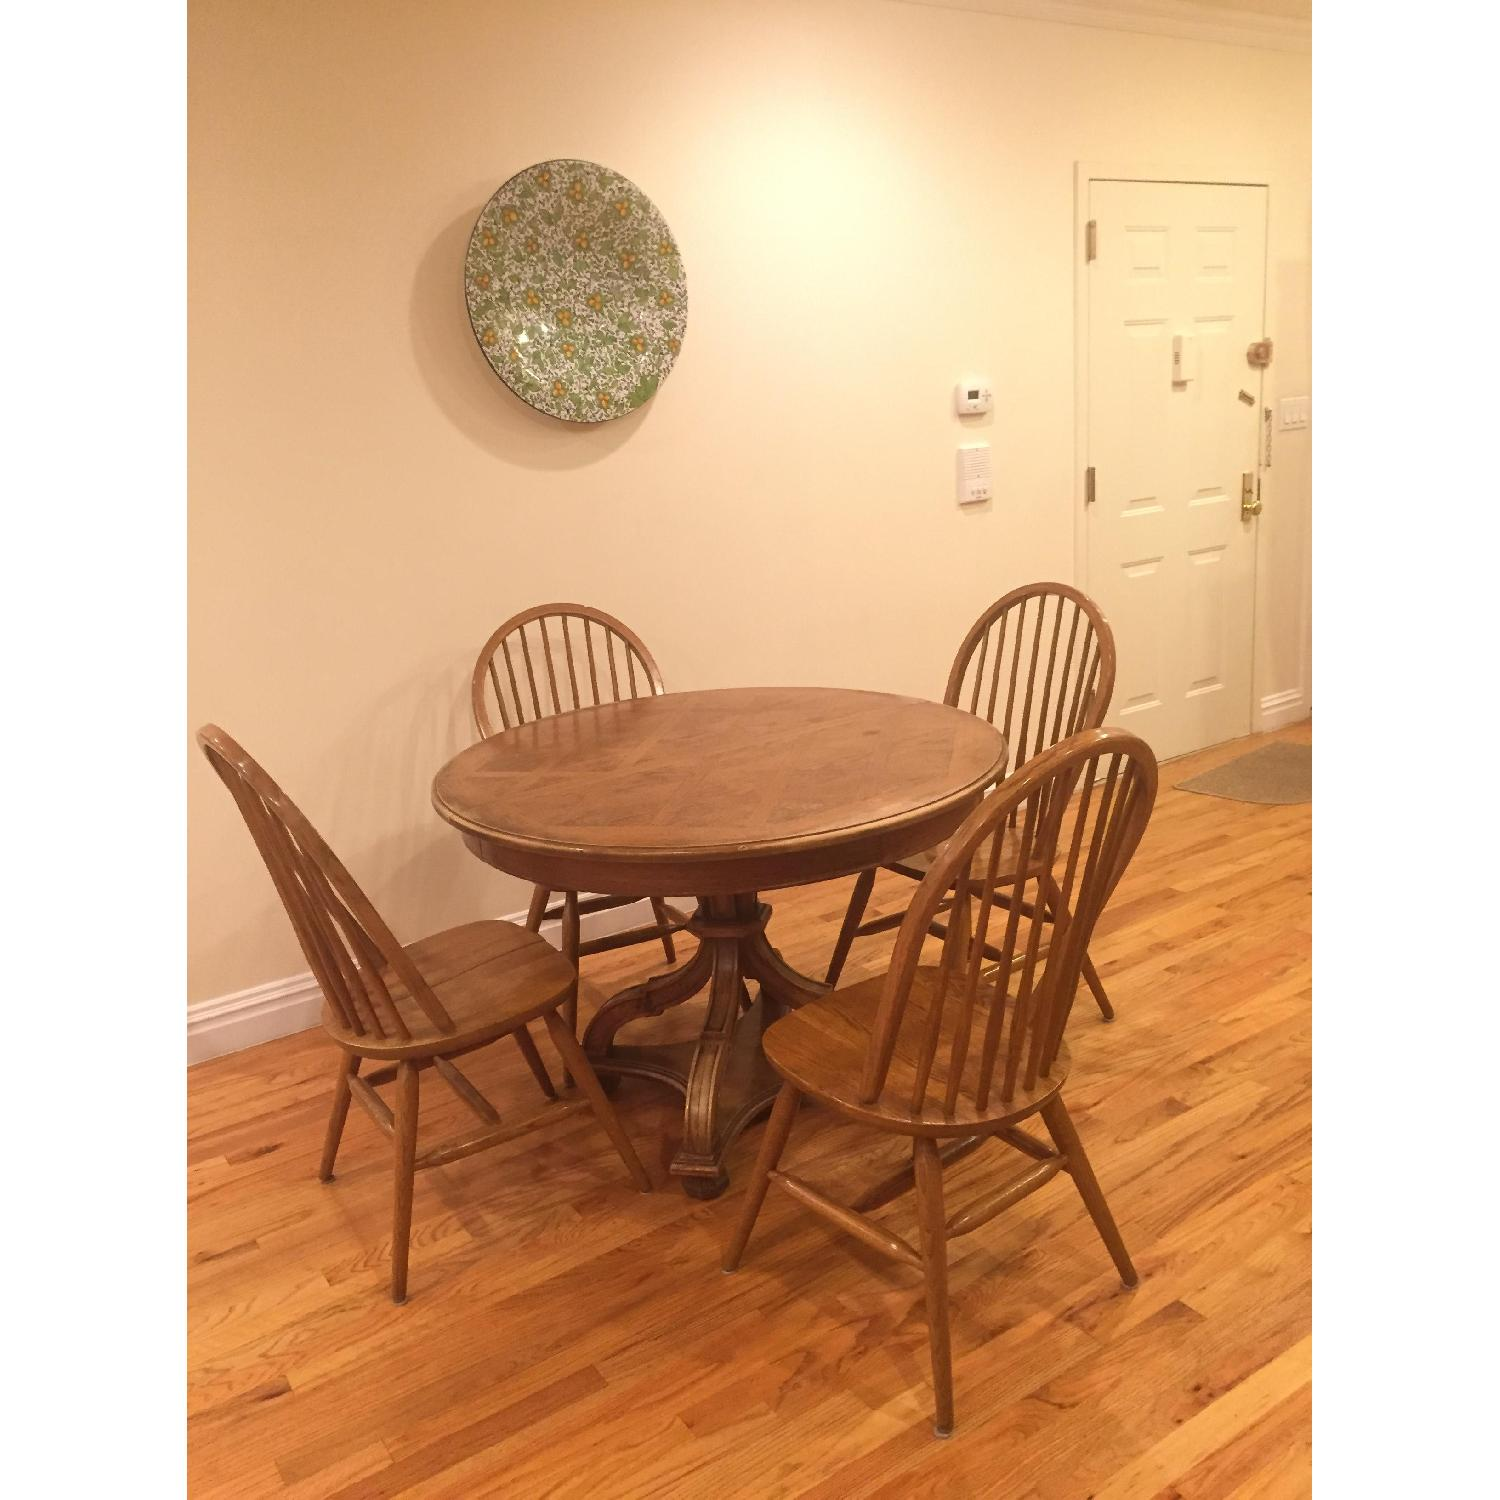 Dining Table w/ 4 Chairs - image-2